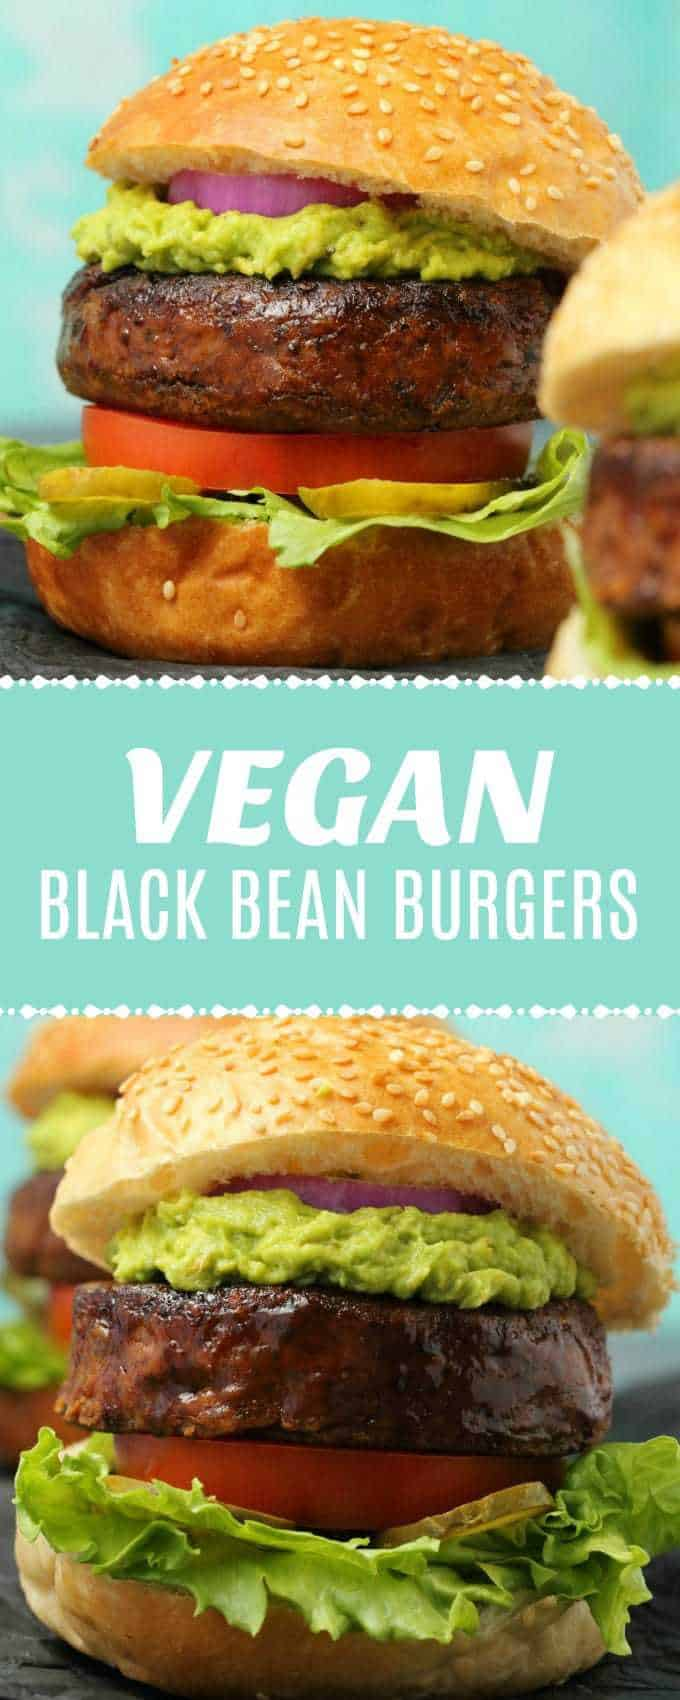 Thick and hearty vegan black bean burgers, crispy on the outside, soft on the inside, simple, savory and deliciously spiced! | lovingitvegan.com